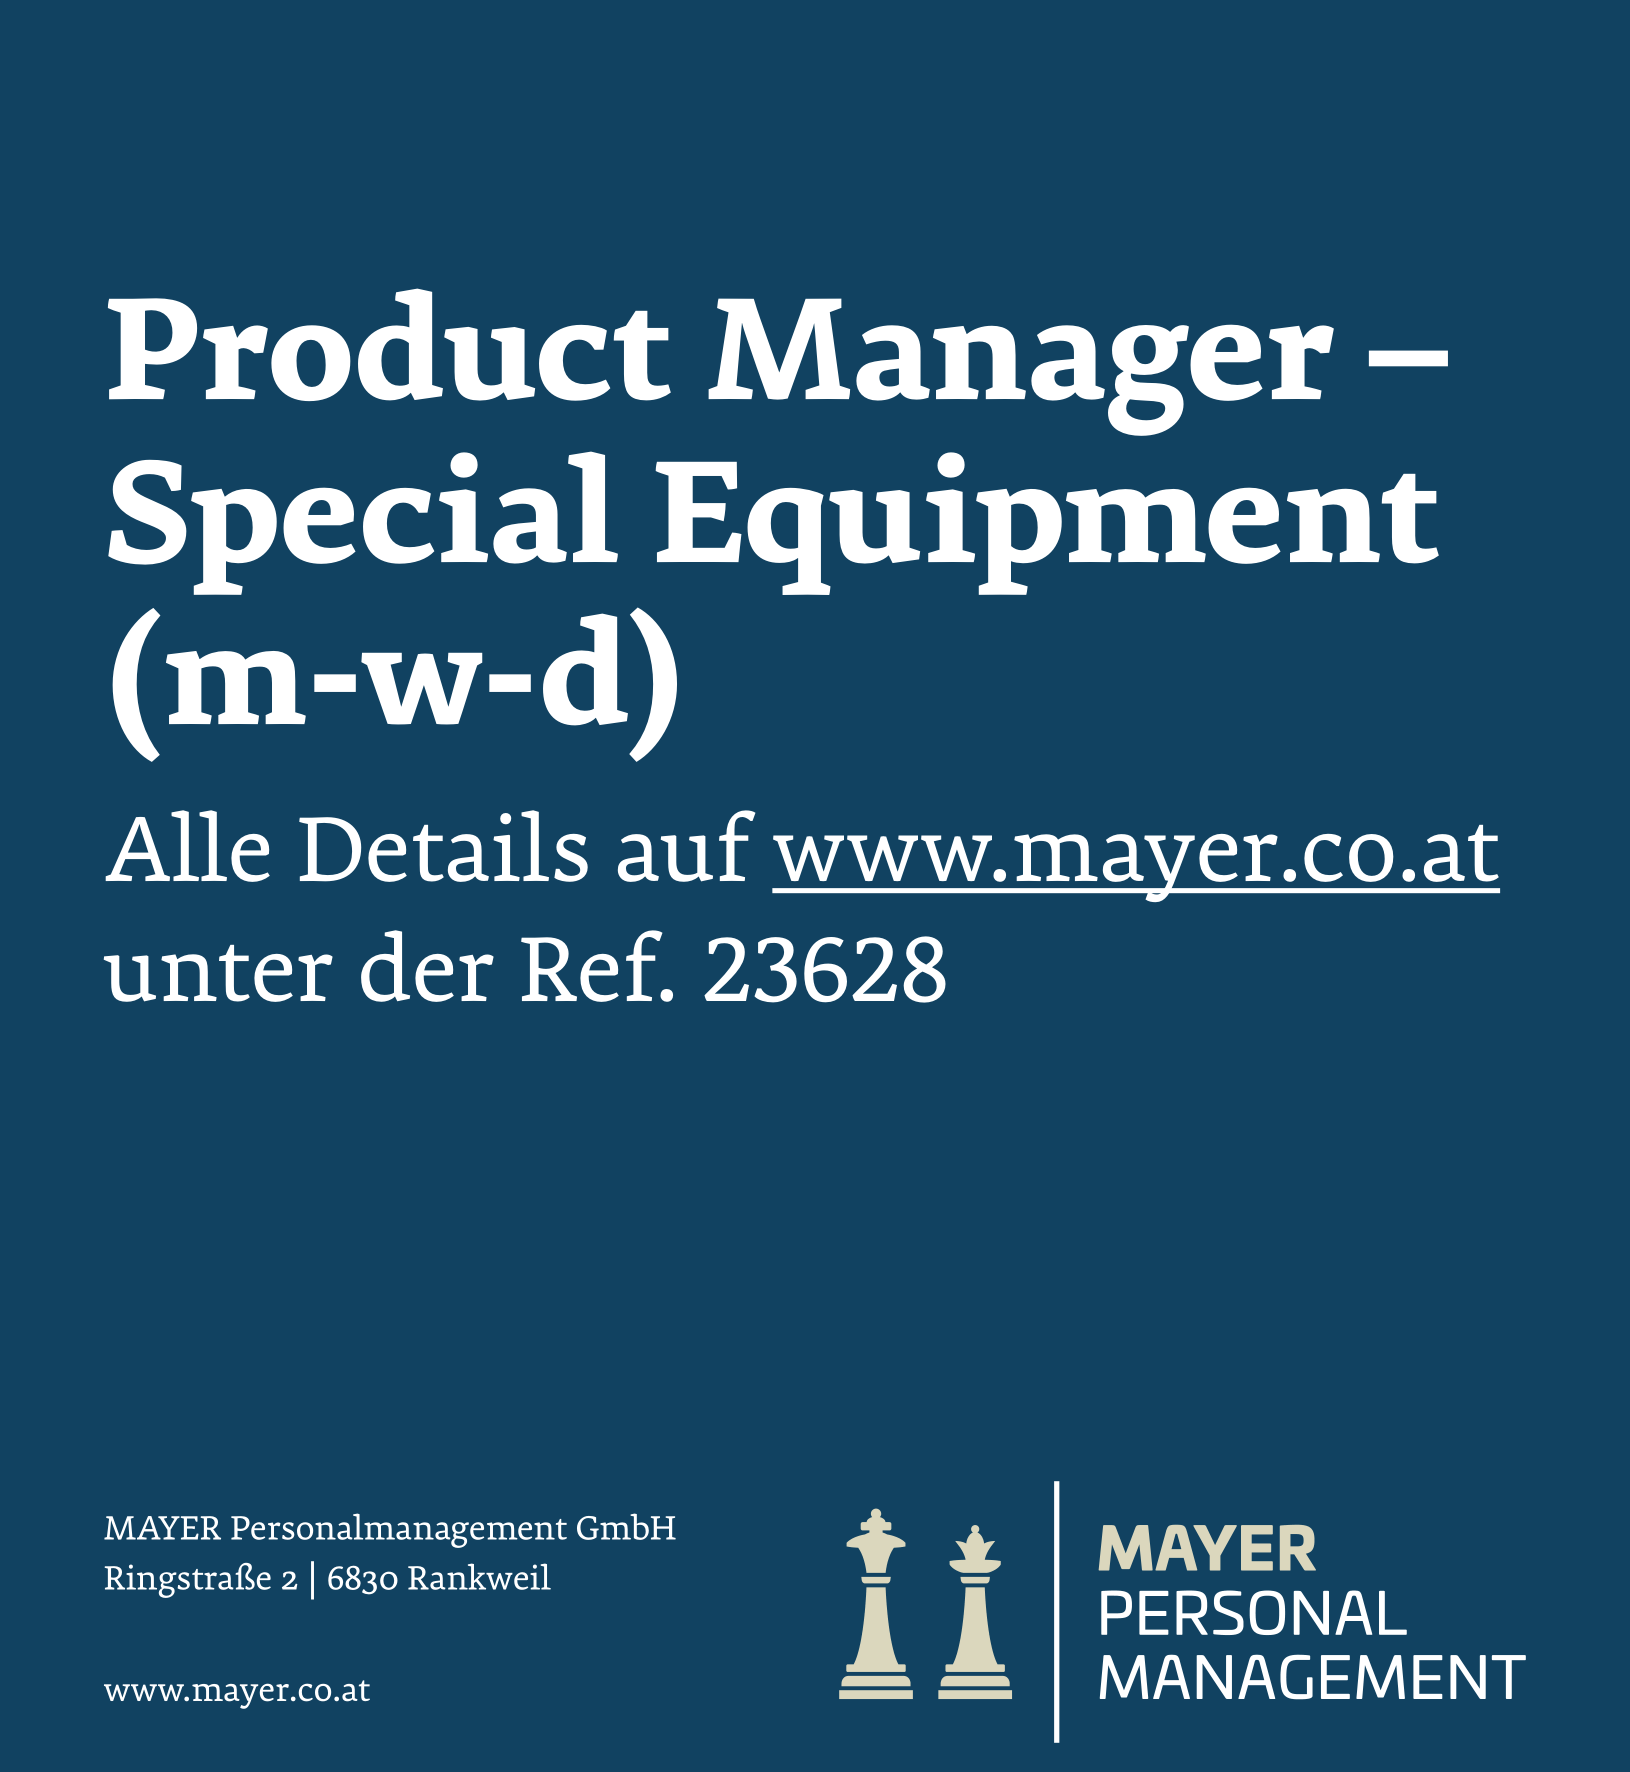 Product Manager - Special Equipment (m-w-d)